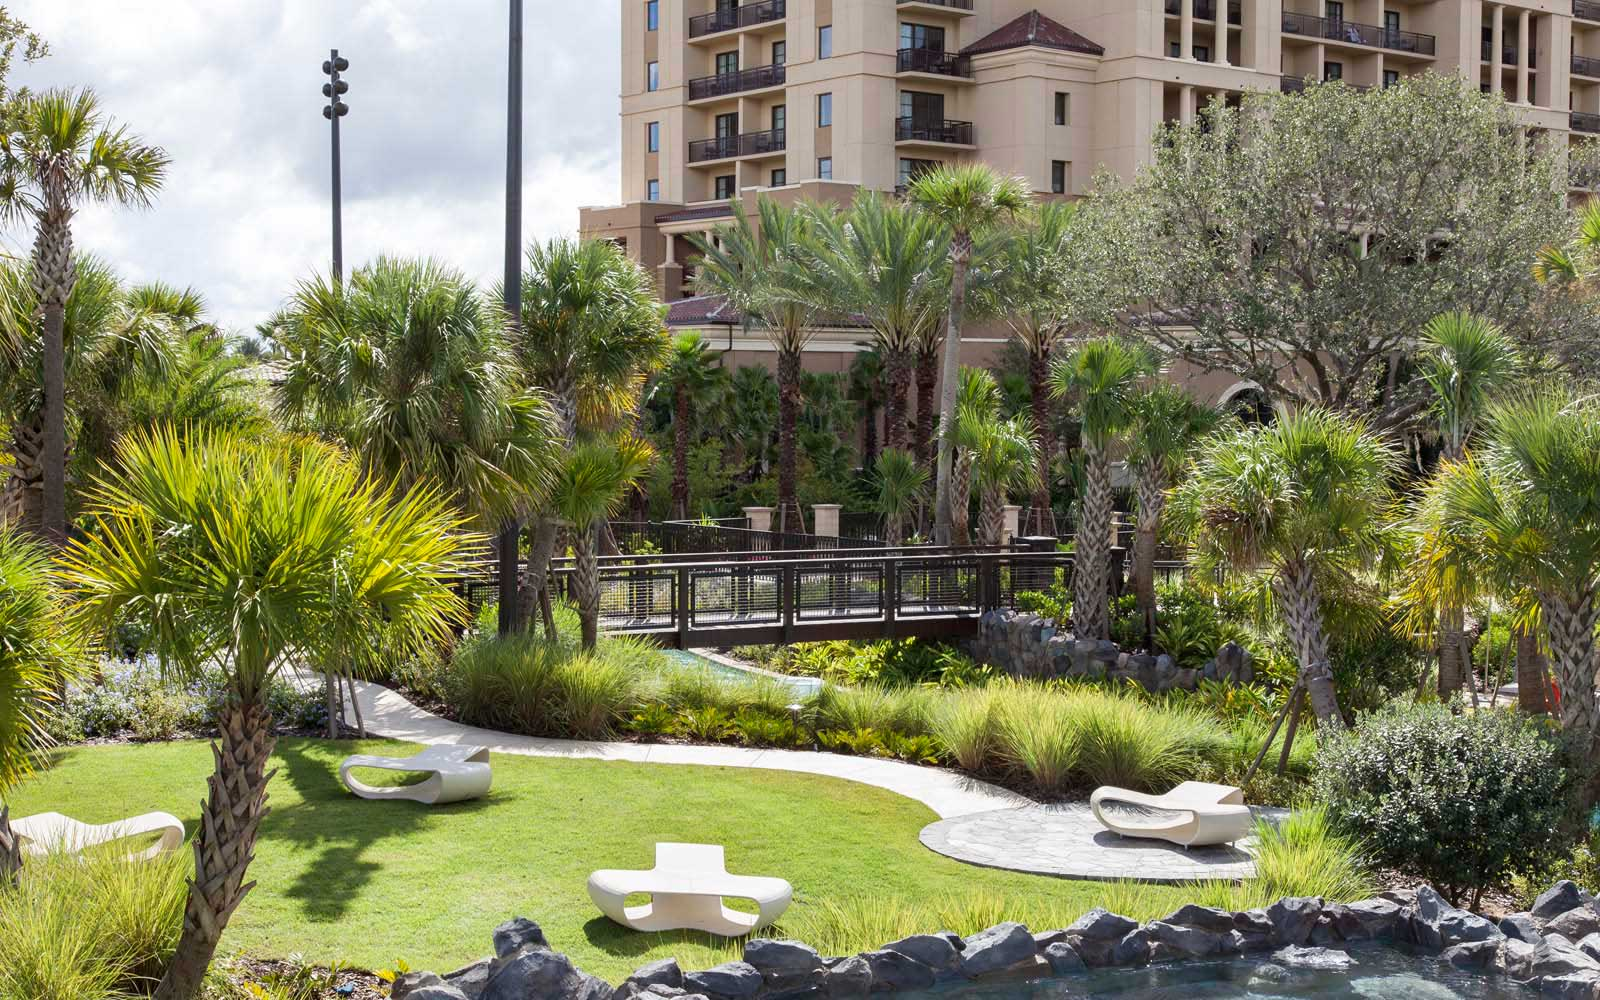 Everything You Need to Know About Staying at the Four Seasons Resort Orlando